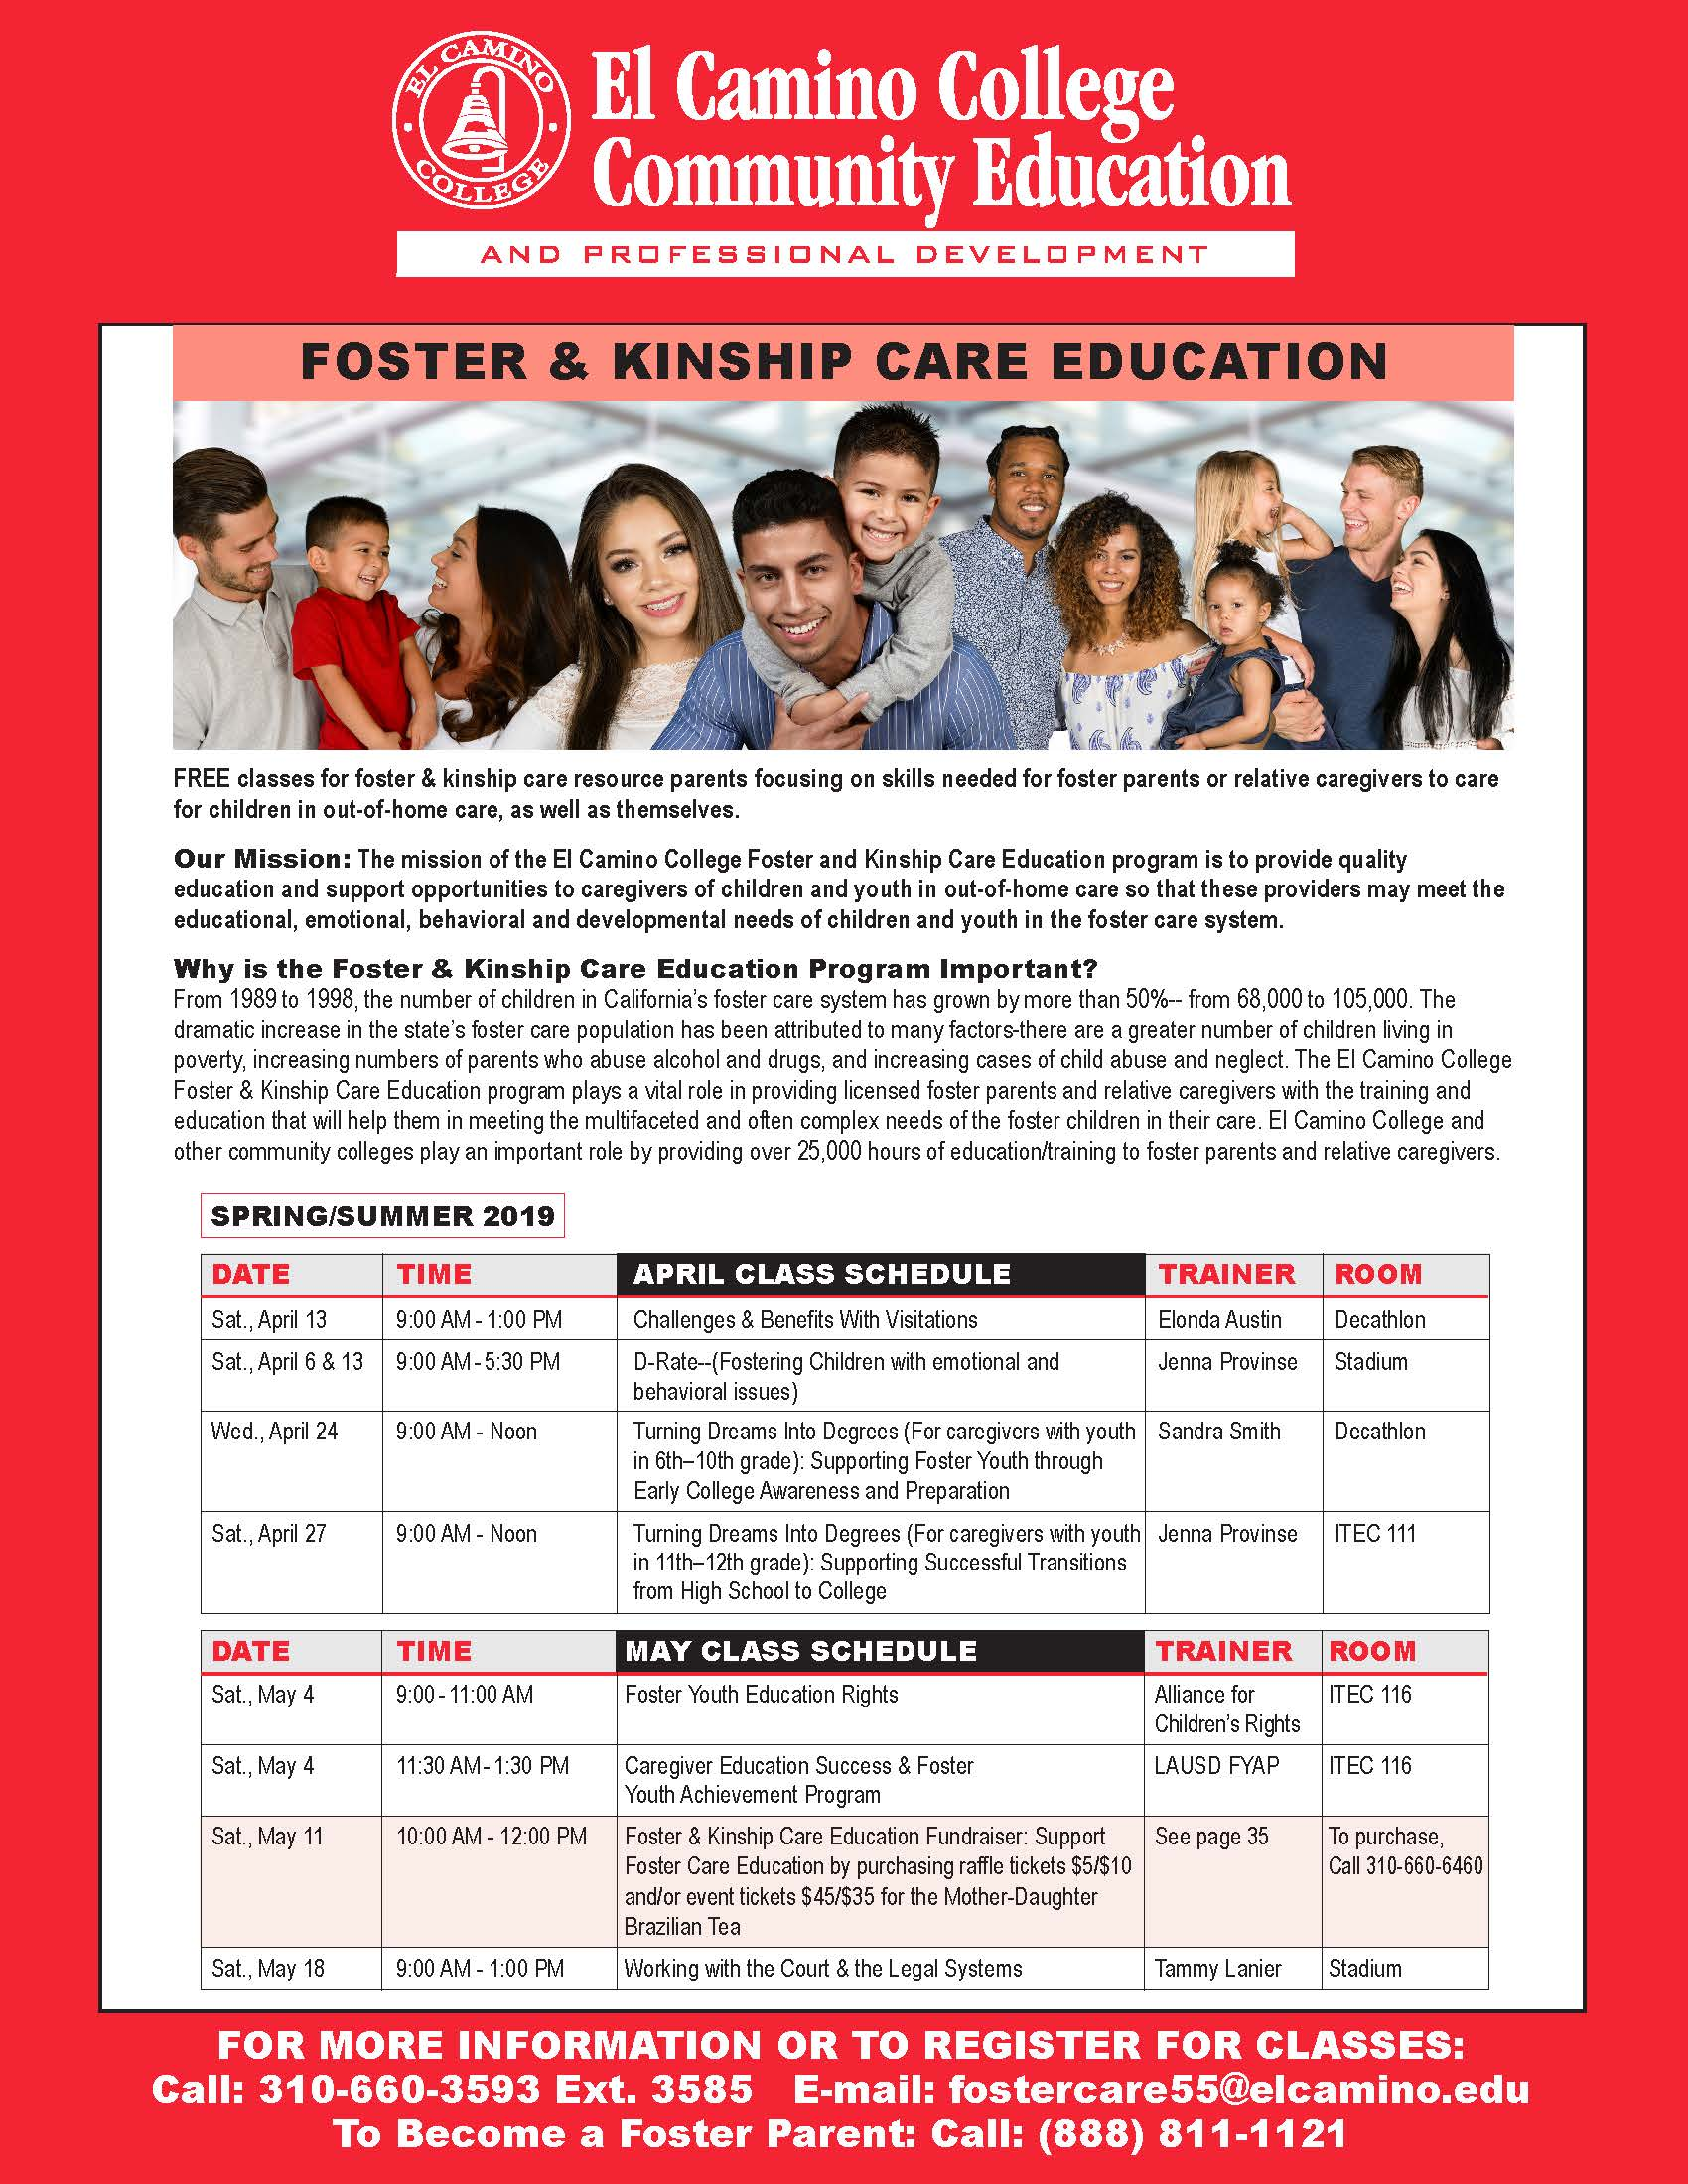 Foster & Kinship Care - Courses - El Camino College Community Education